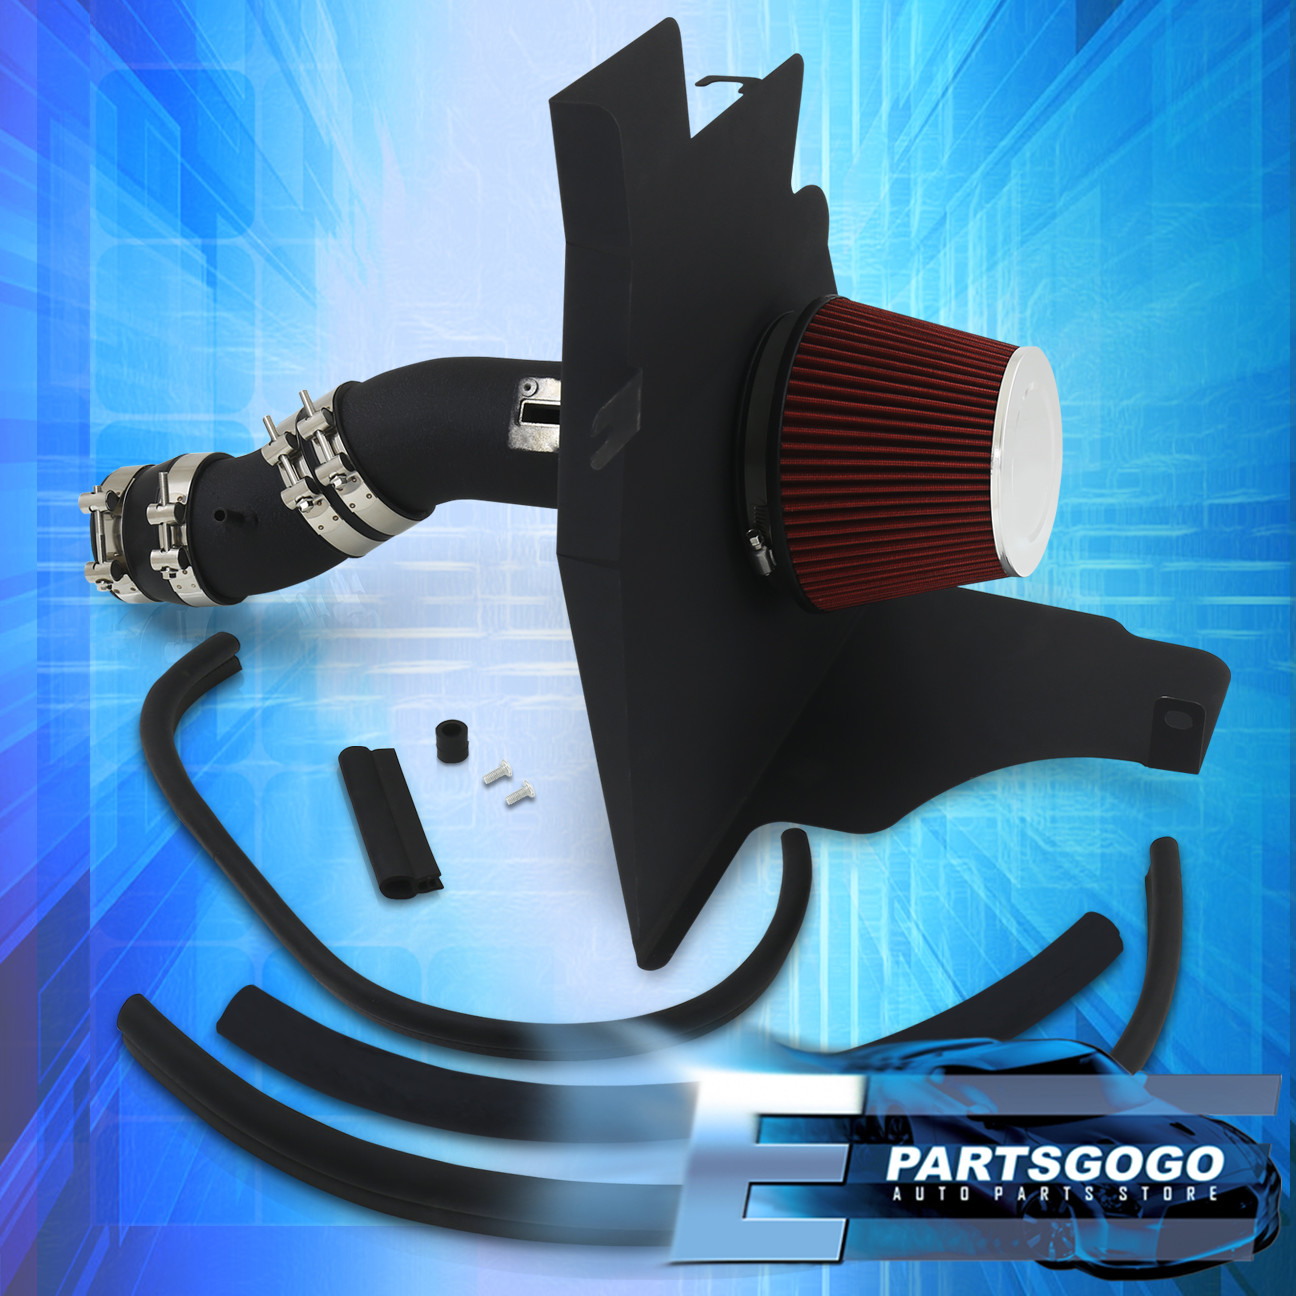 11-14 Fits Ford Mustang V6 St Base 3.7L 3.7 Black Piping Cold Air Intake Kit